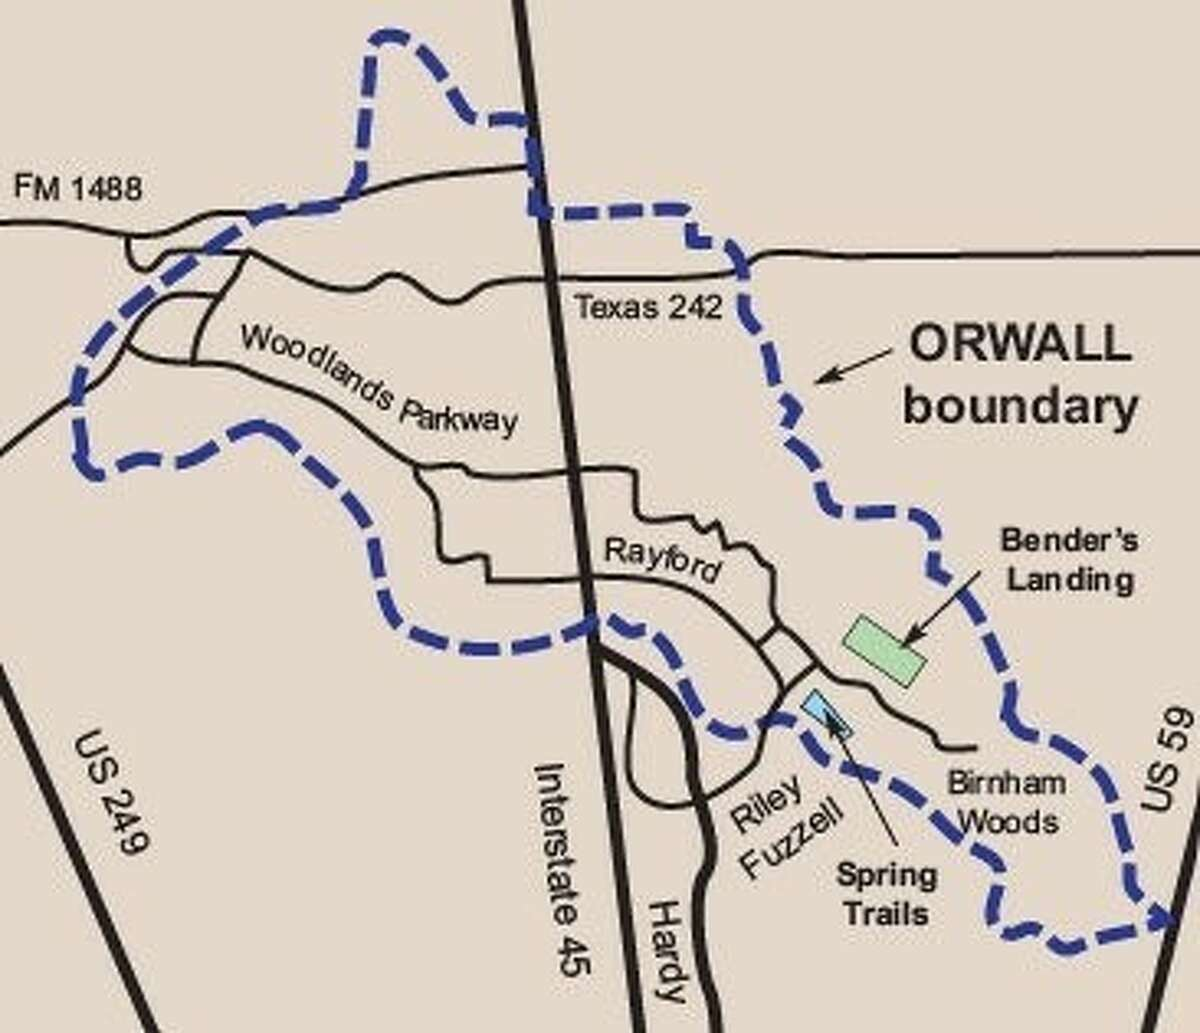 Pictured are the new boundaries for ORWALL.